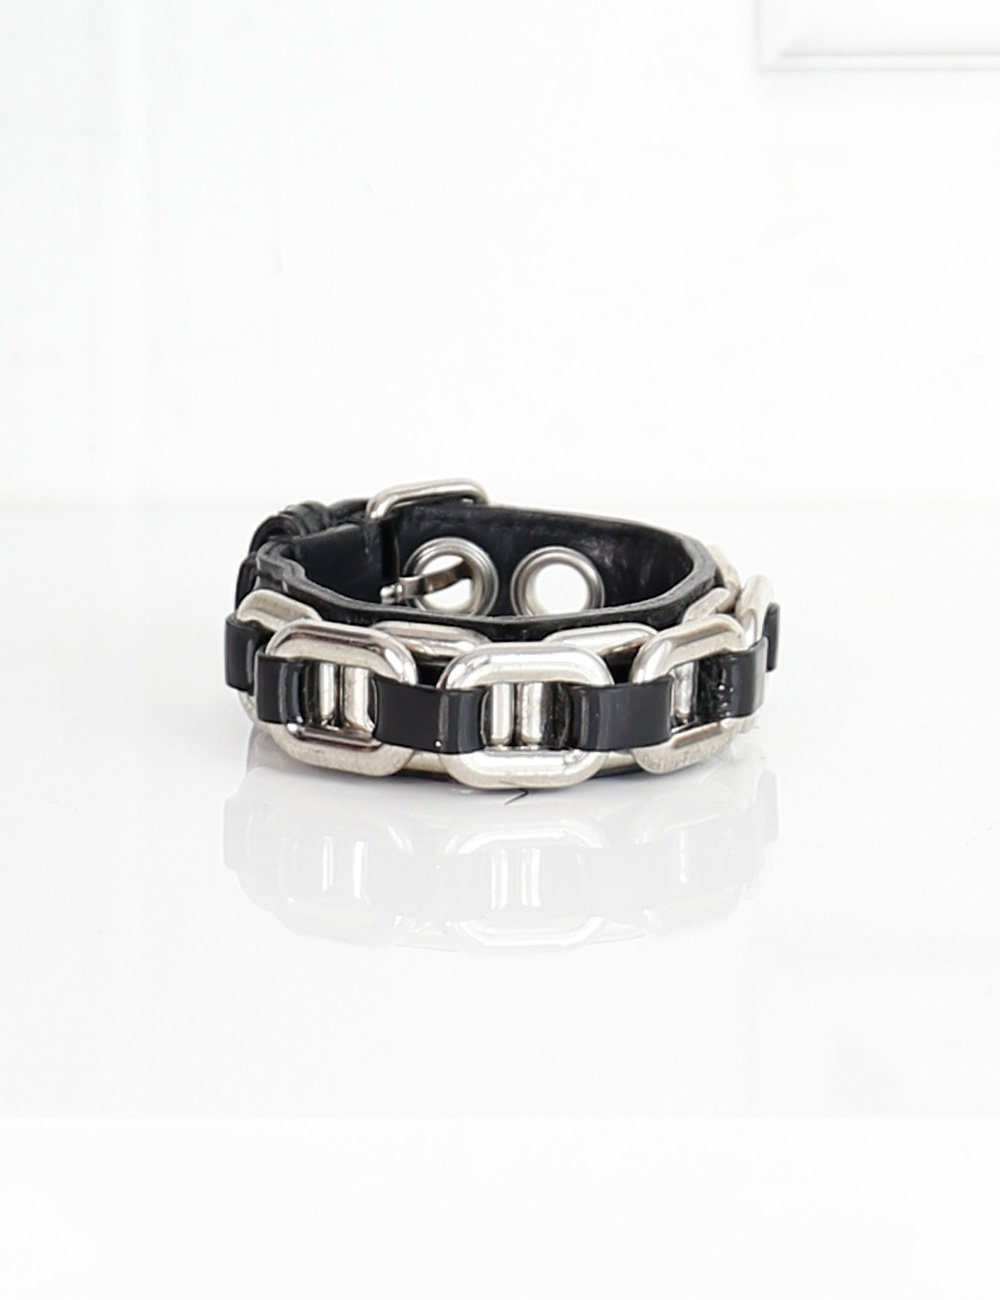 Miu Miu black patent leather chain link bracelet- My Wardrobe Mistakes